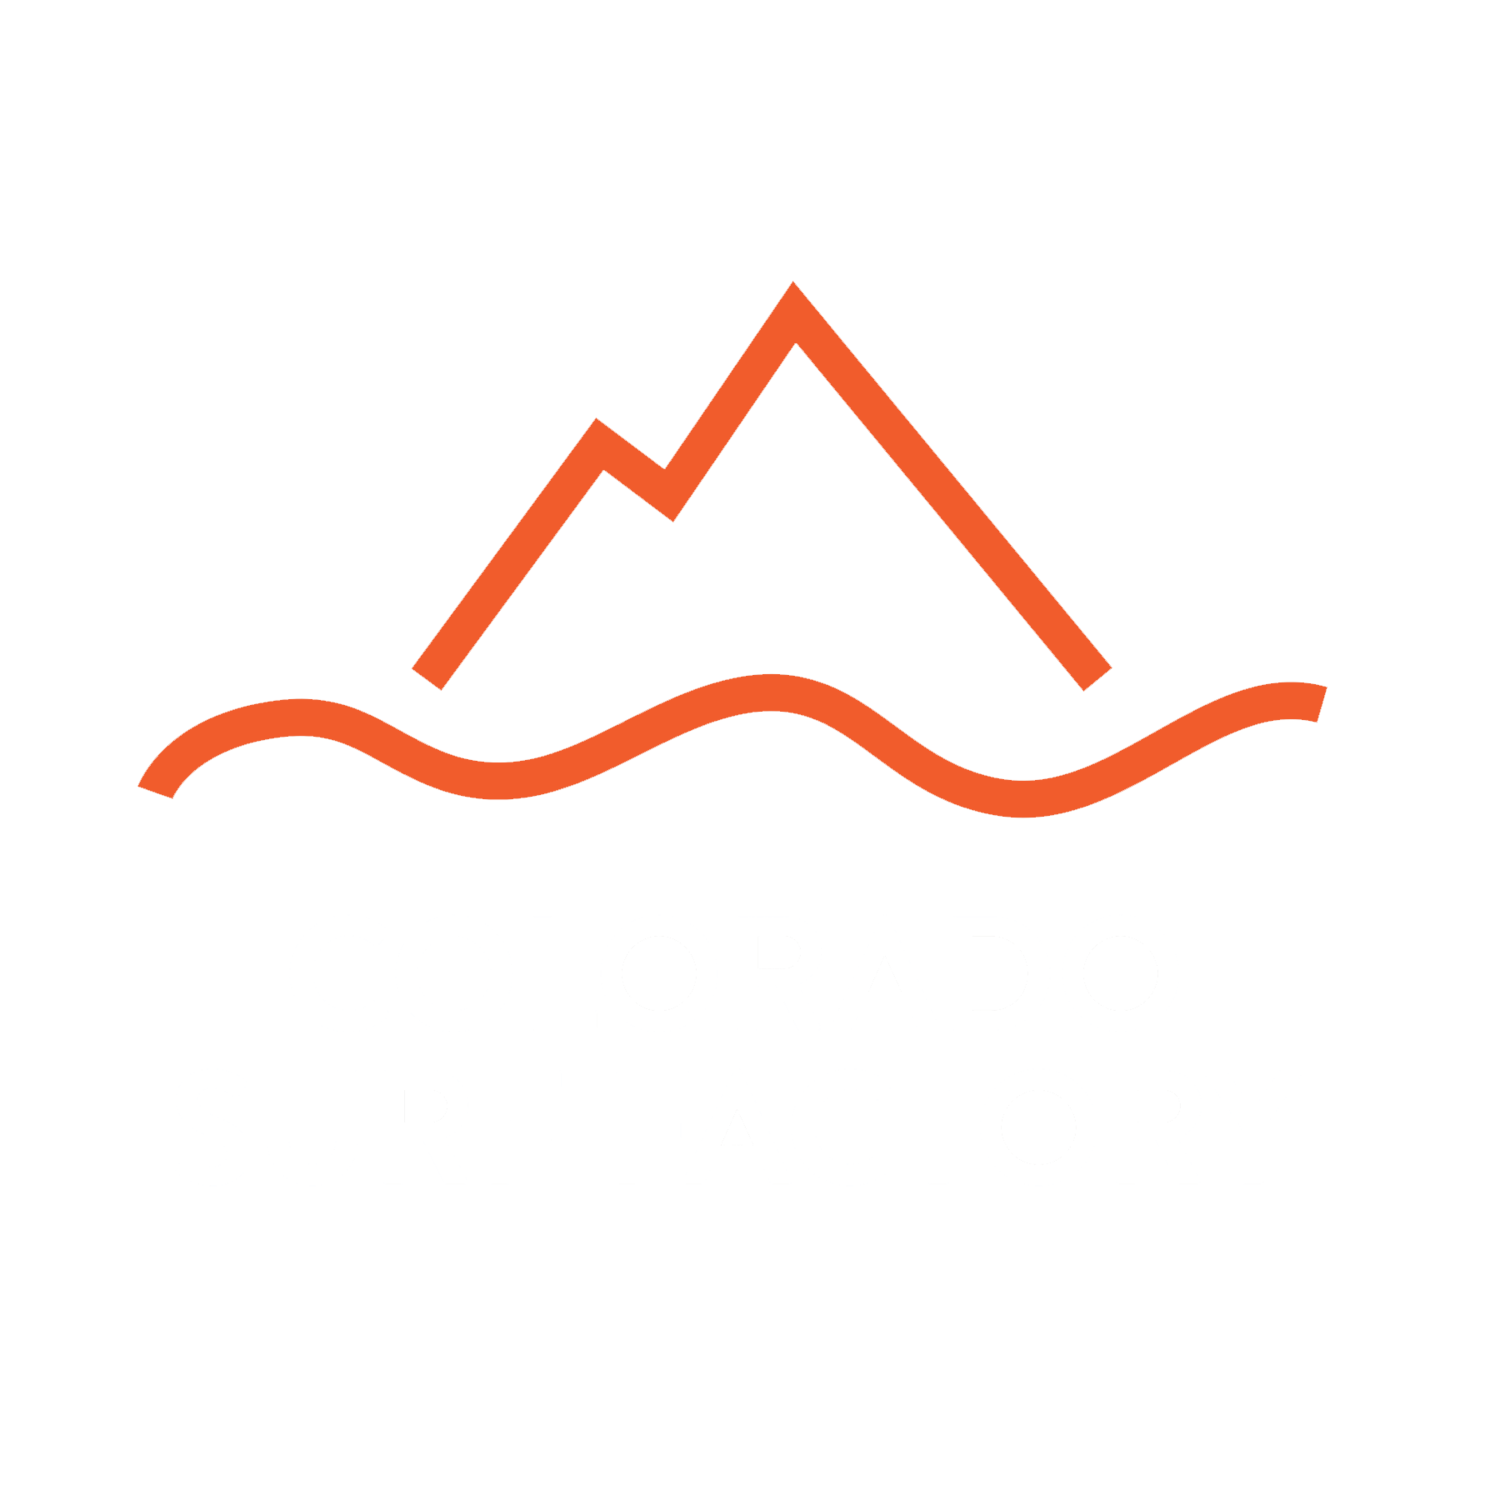 Colorado Surf Factory